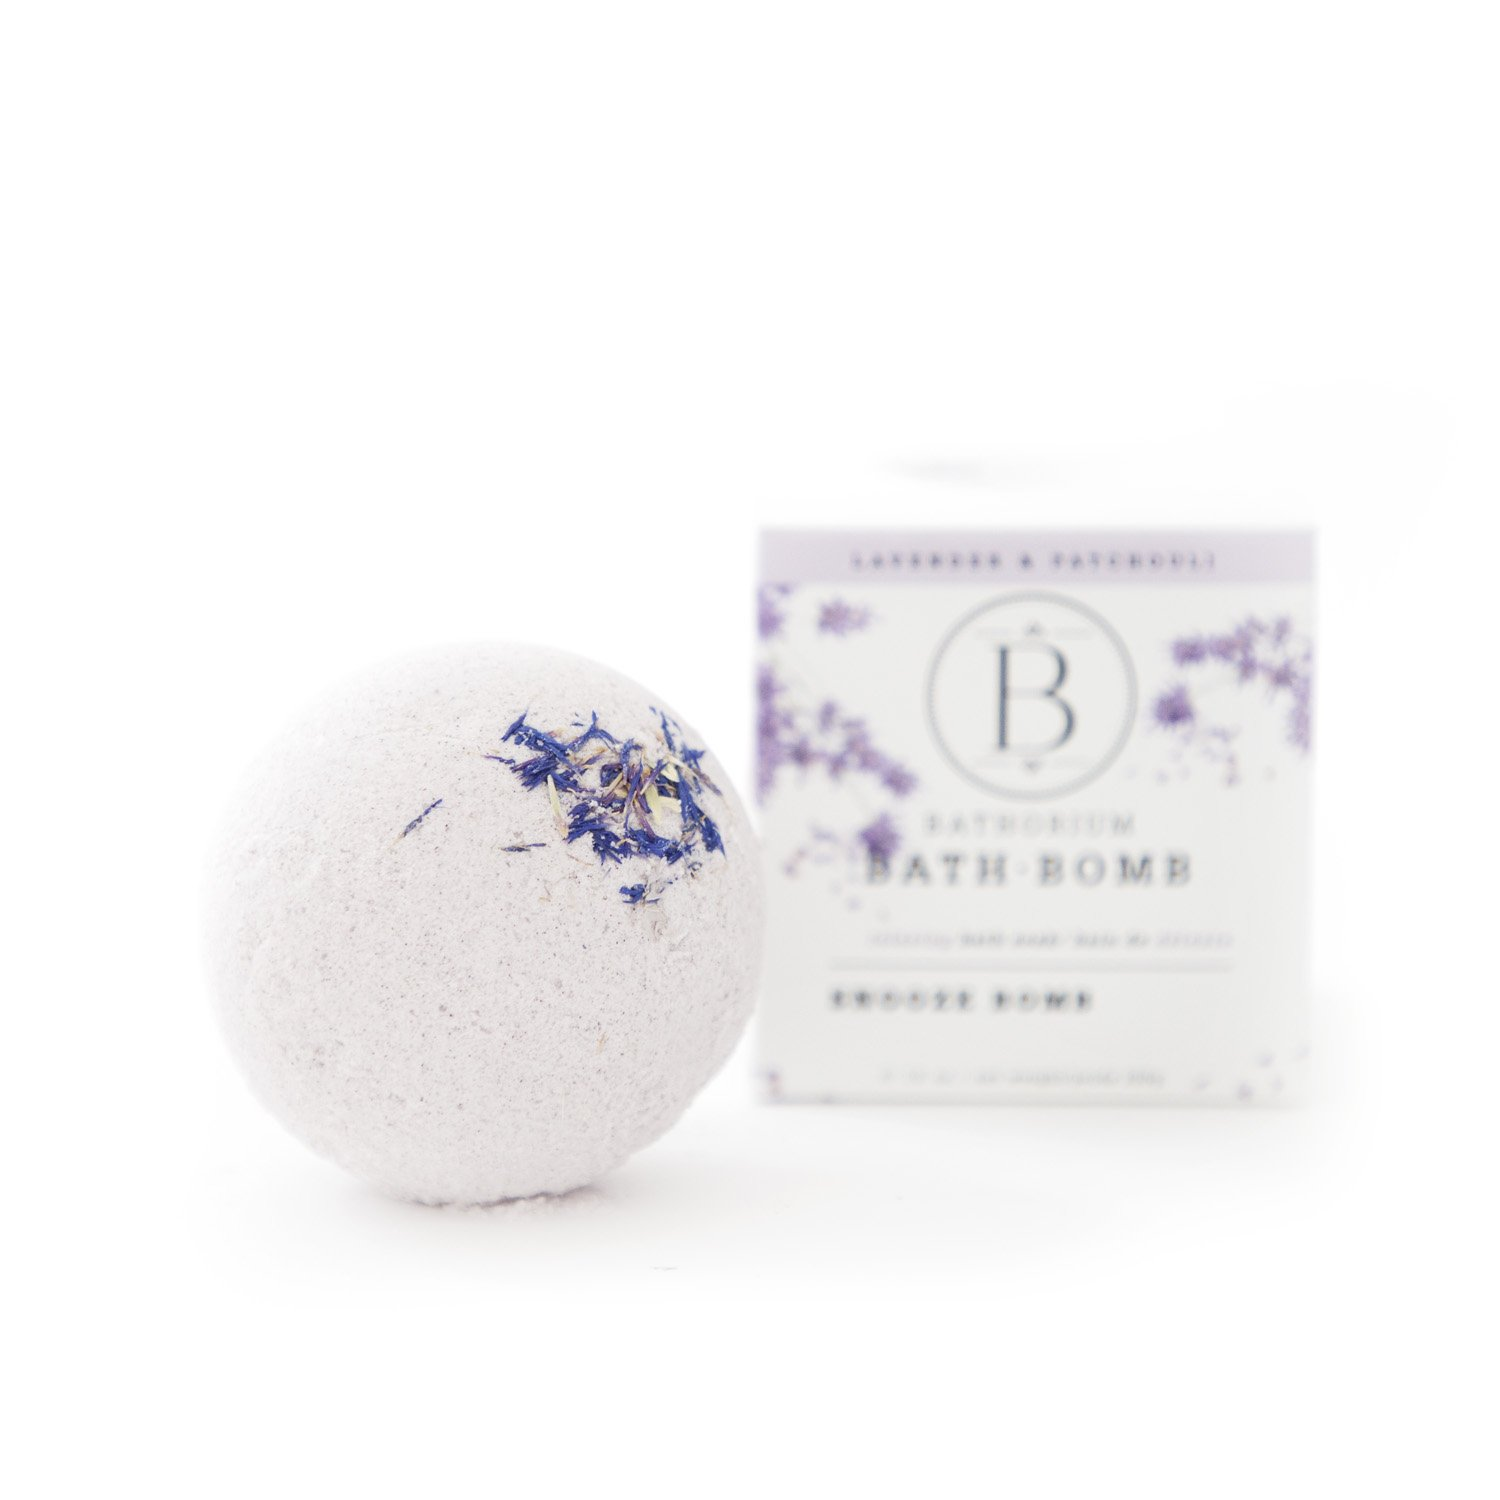 Bathorium, Snooze Bomb, Bath Bomb